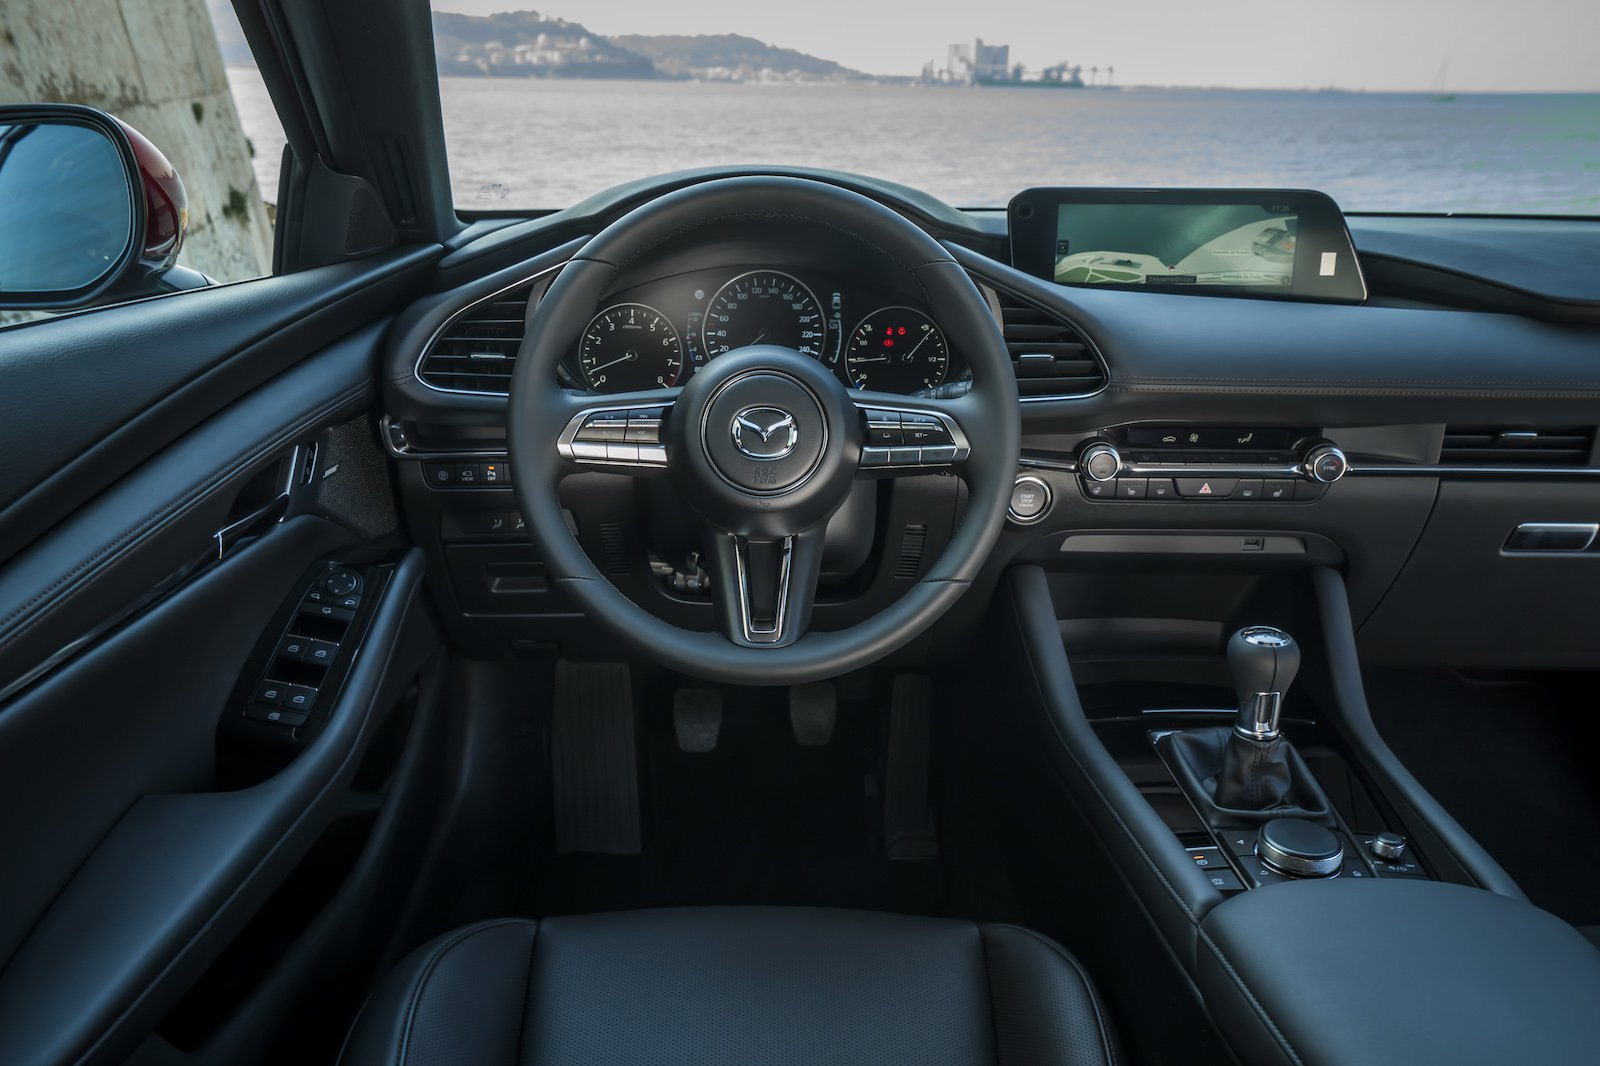 2019 mazda 3 review price specs and release date what - Mazda 3 hatchback interior dimensions ...